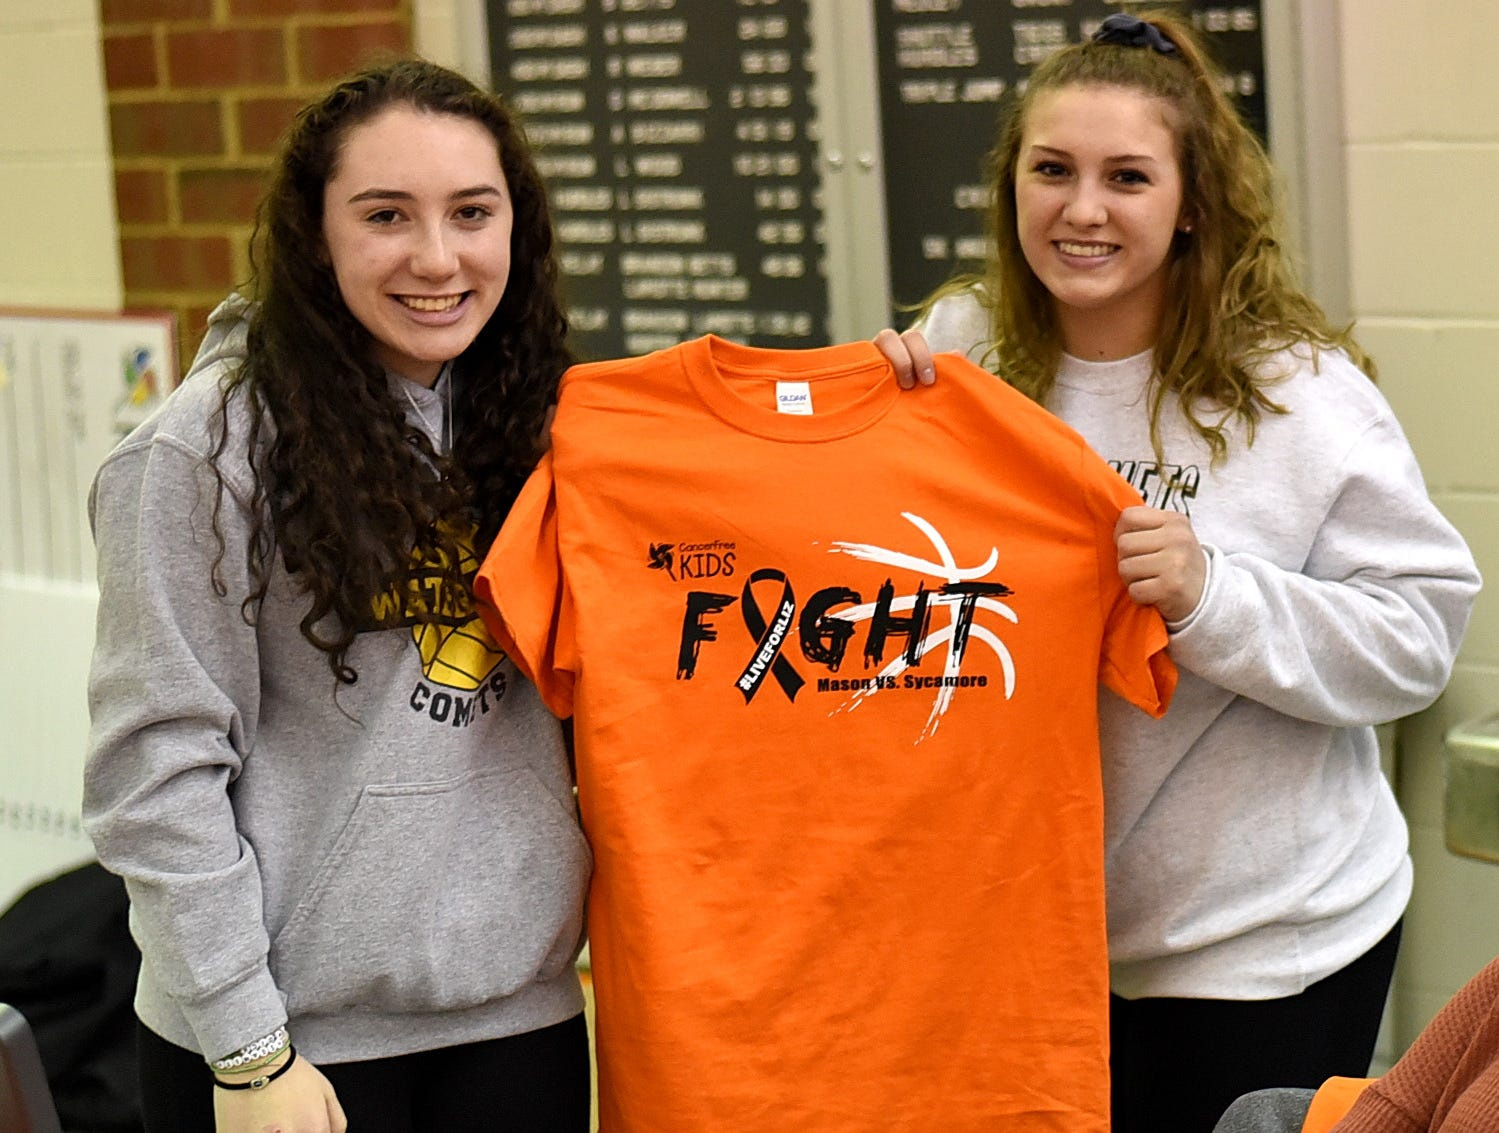 Shosi Ploetz and Katherine Draginoff of Mason show of this year's T-shirt in the Third Annual Live for Liz Fight For Cancer Free Kids Basketball Game, Feb. 1, 2019.